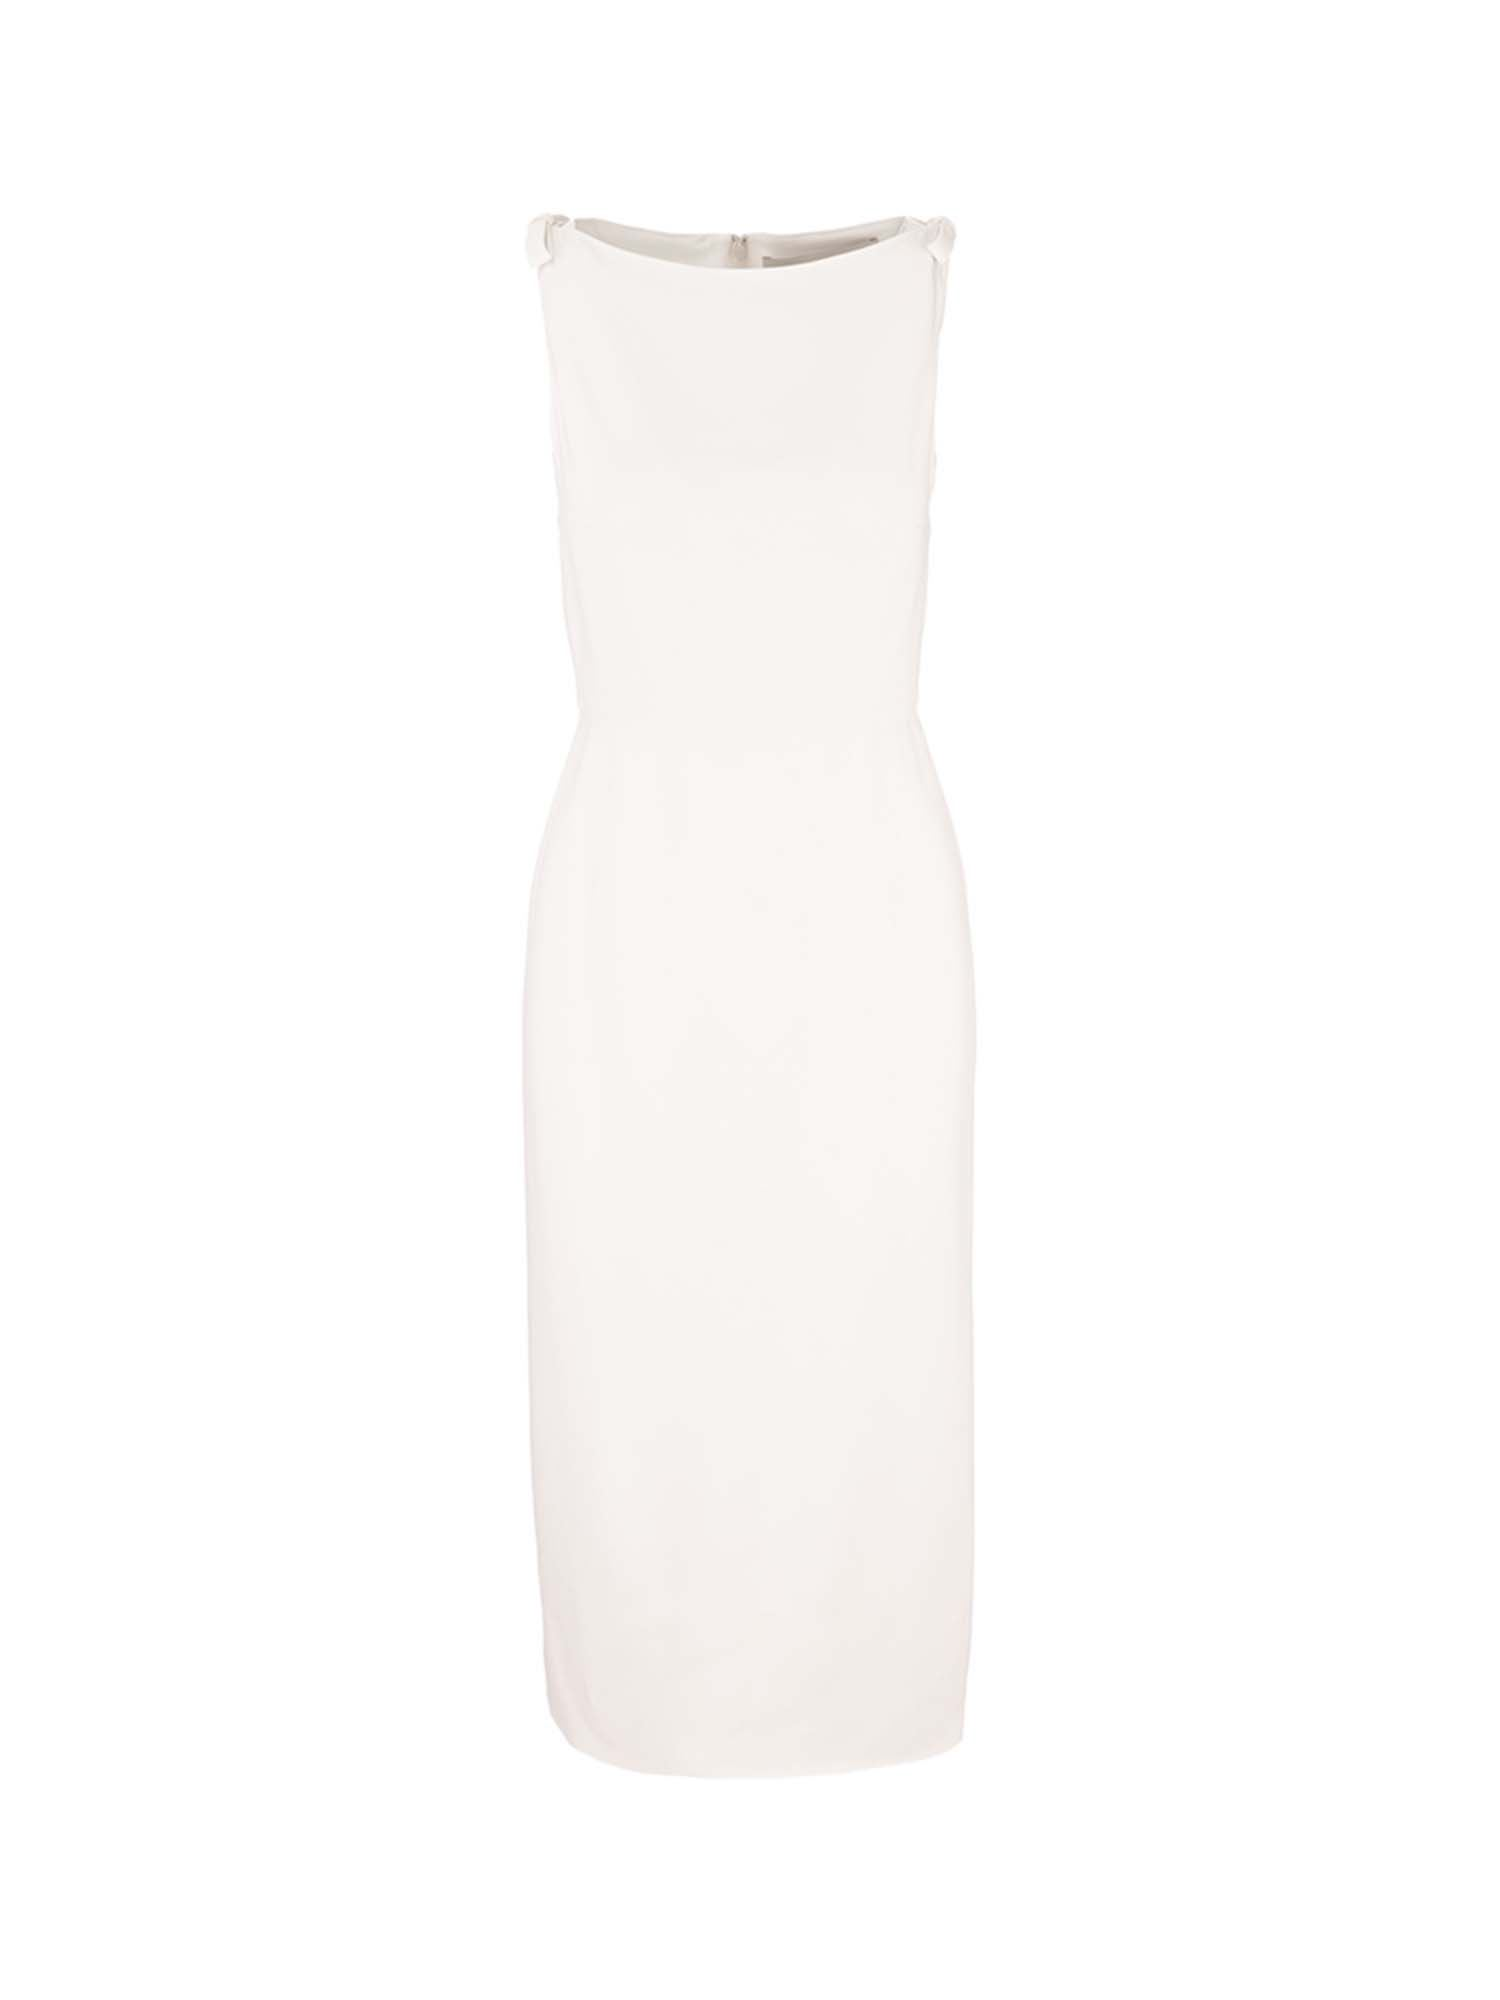 Valentino Dresses SHEATH DRESS IN WHITE